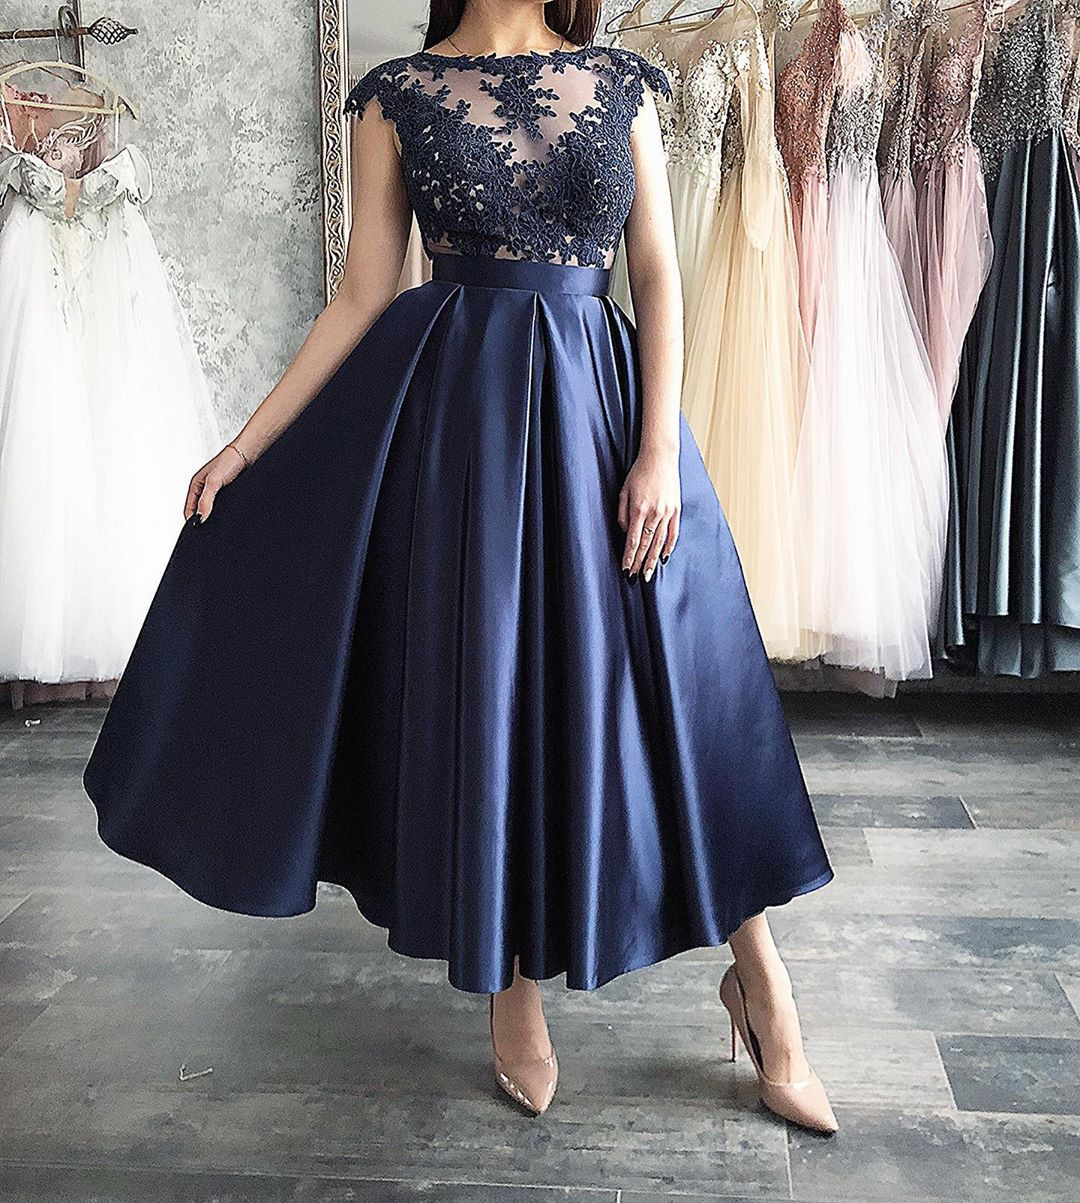 Sexy Elegant Women Cocktail Dresses Navy Blue Dresses Prom Dresses 2019